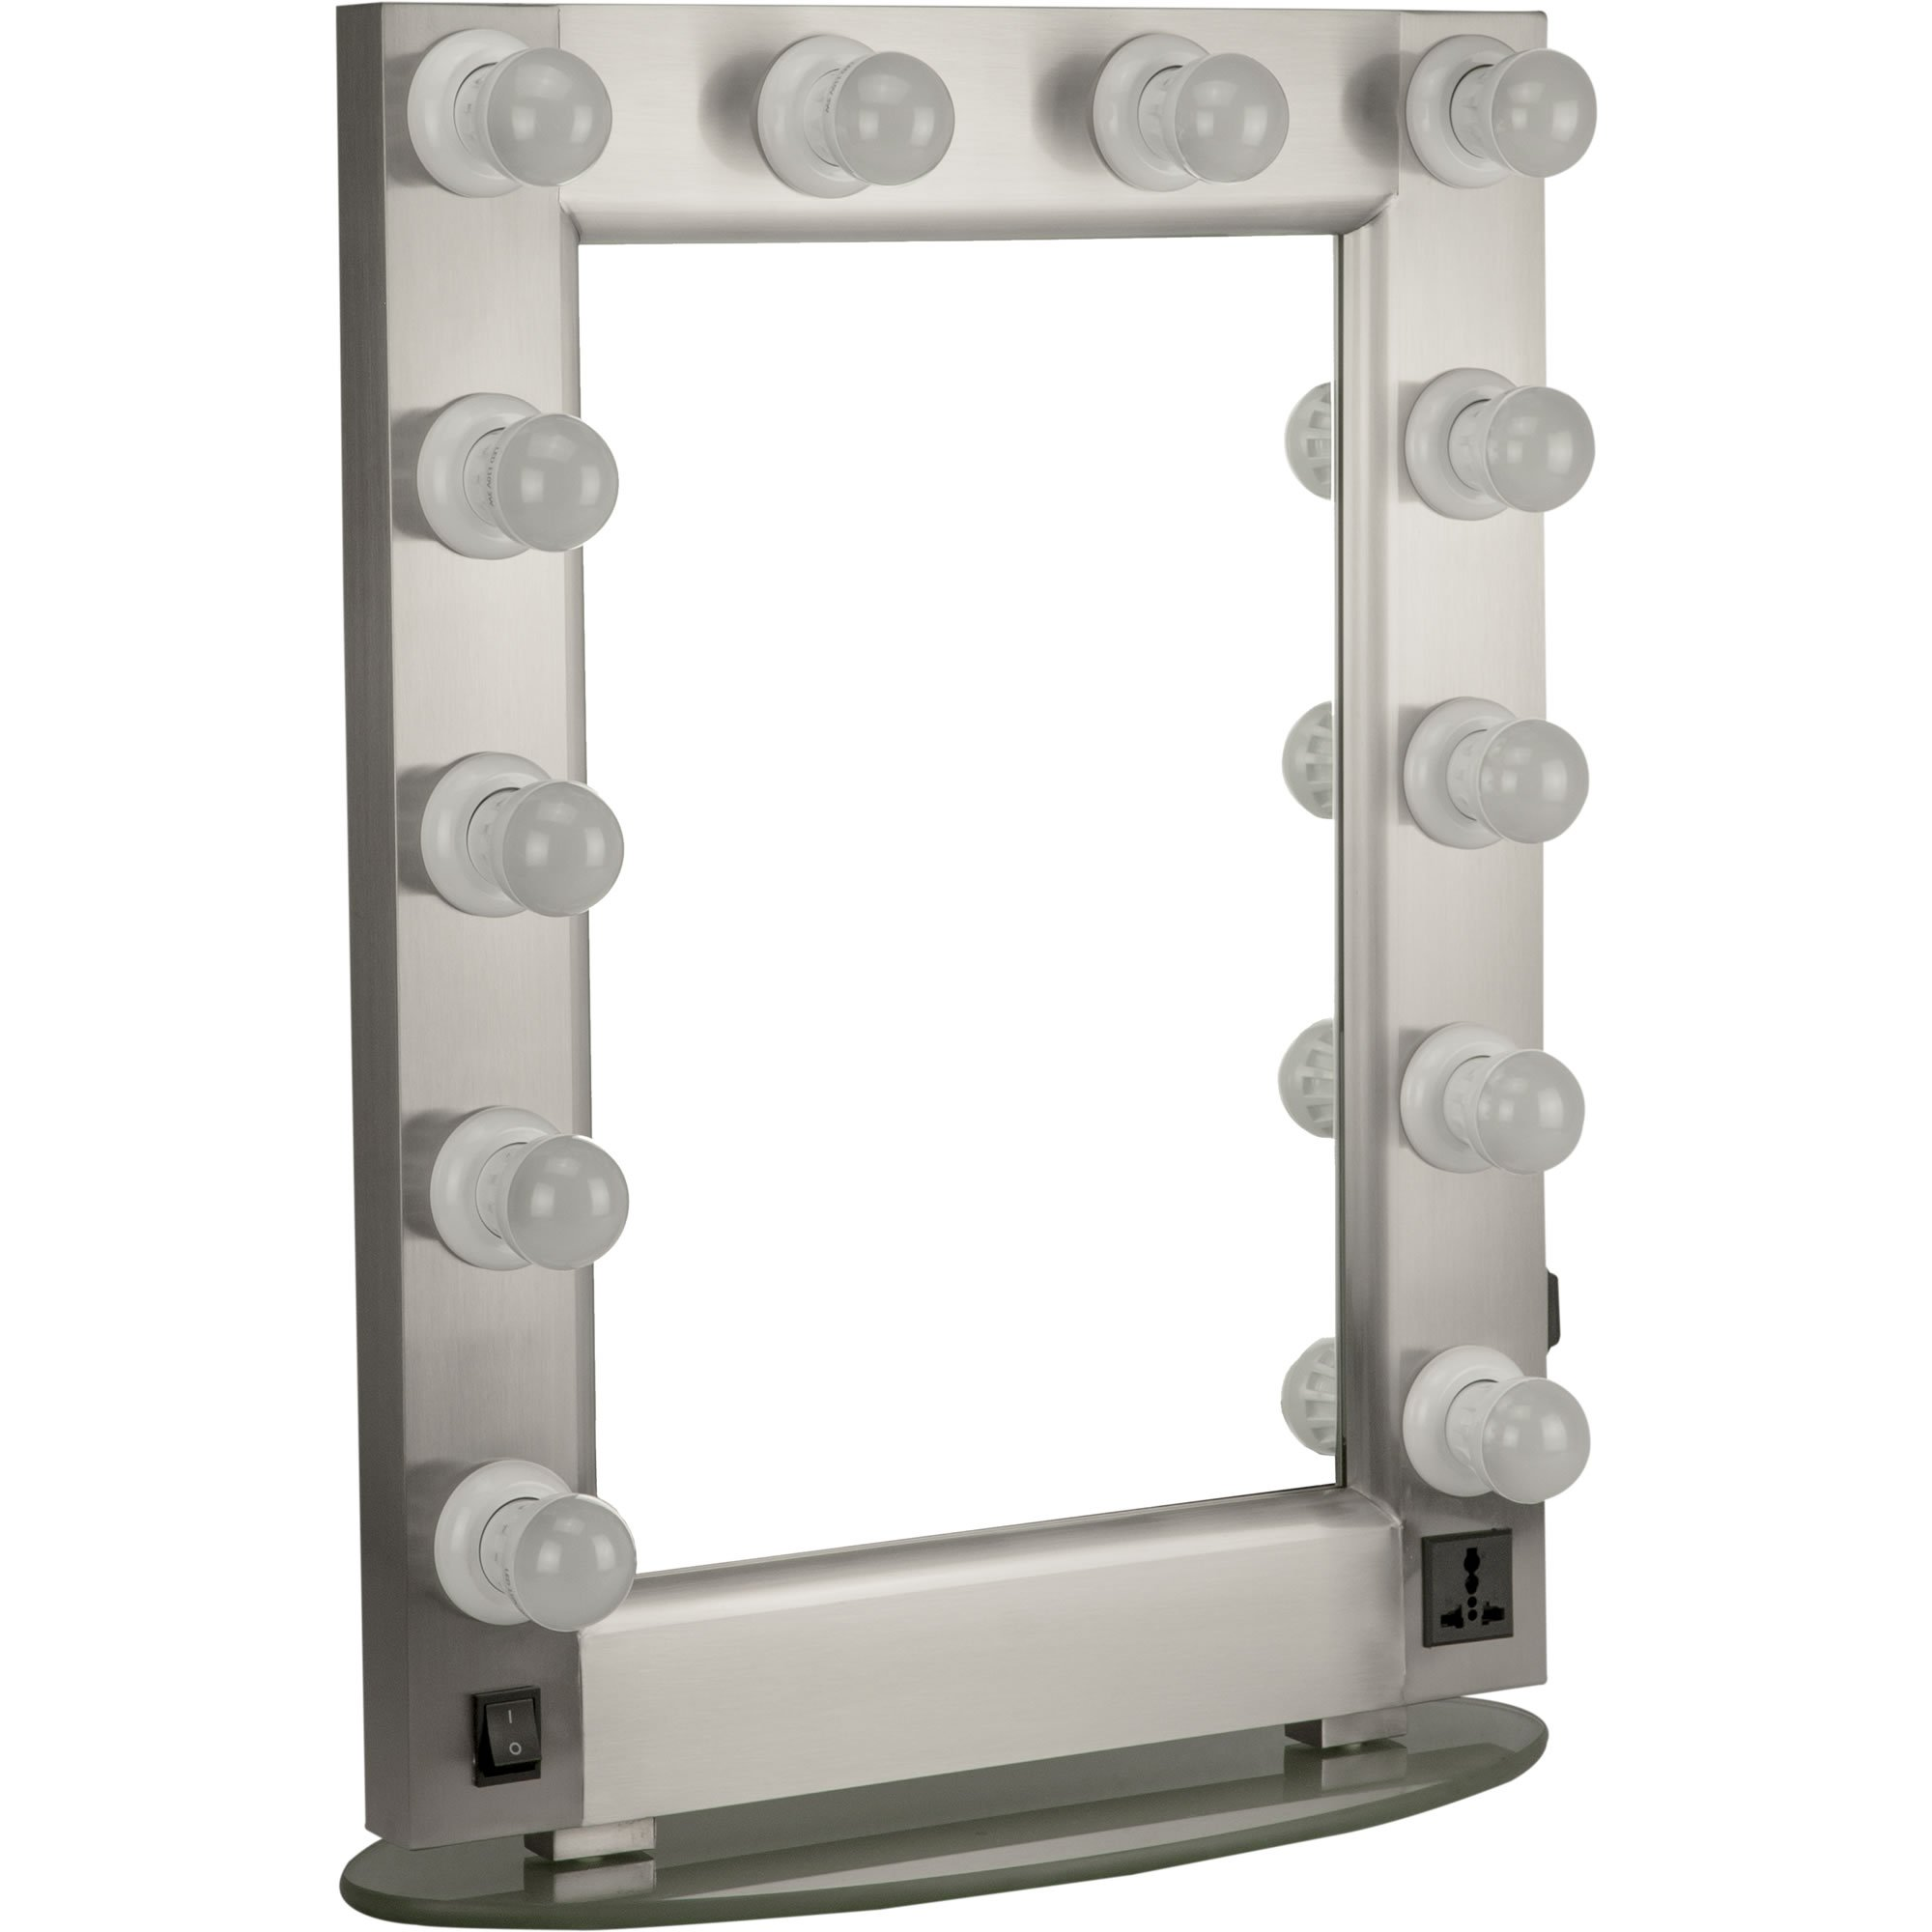 Professional 12 LED Light Glass Stand Tabletop Wall Mounted Tabletop Makeup Cosmetic Beauty Hairstylist Mirror